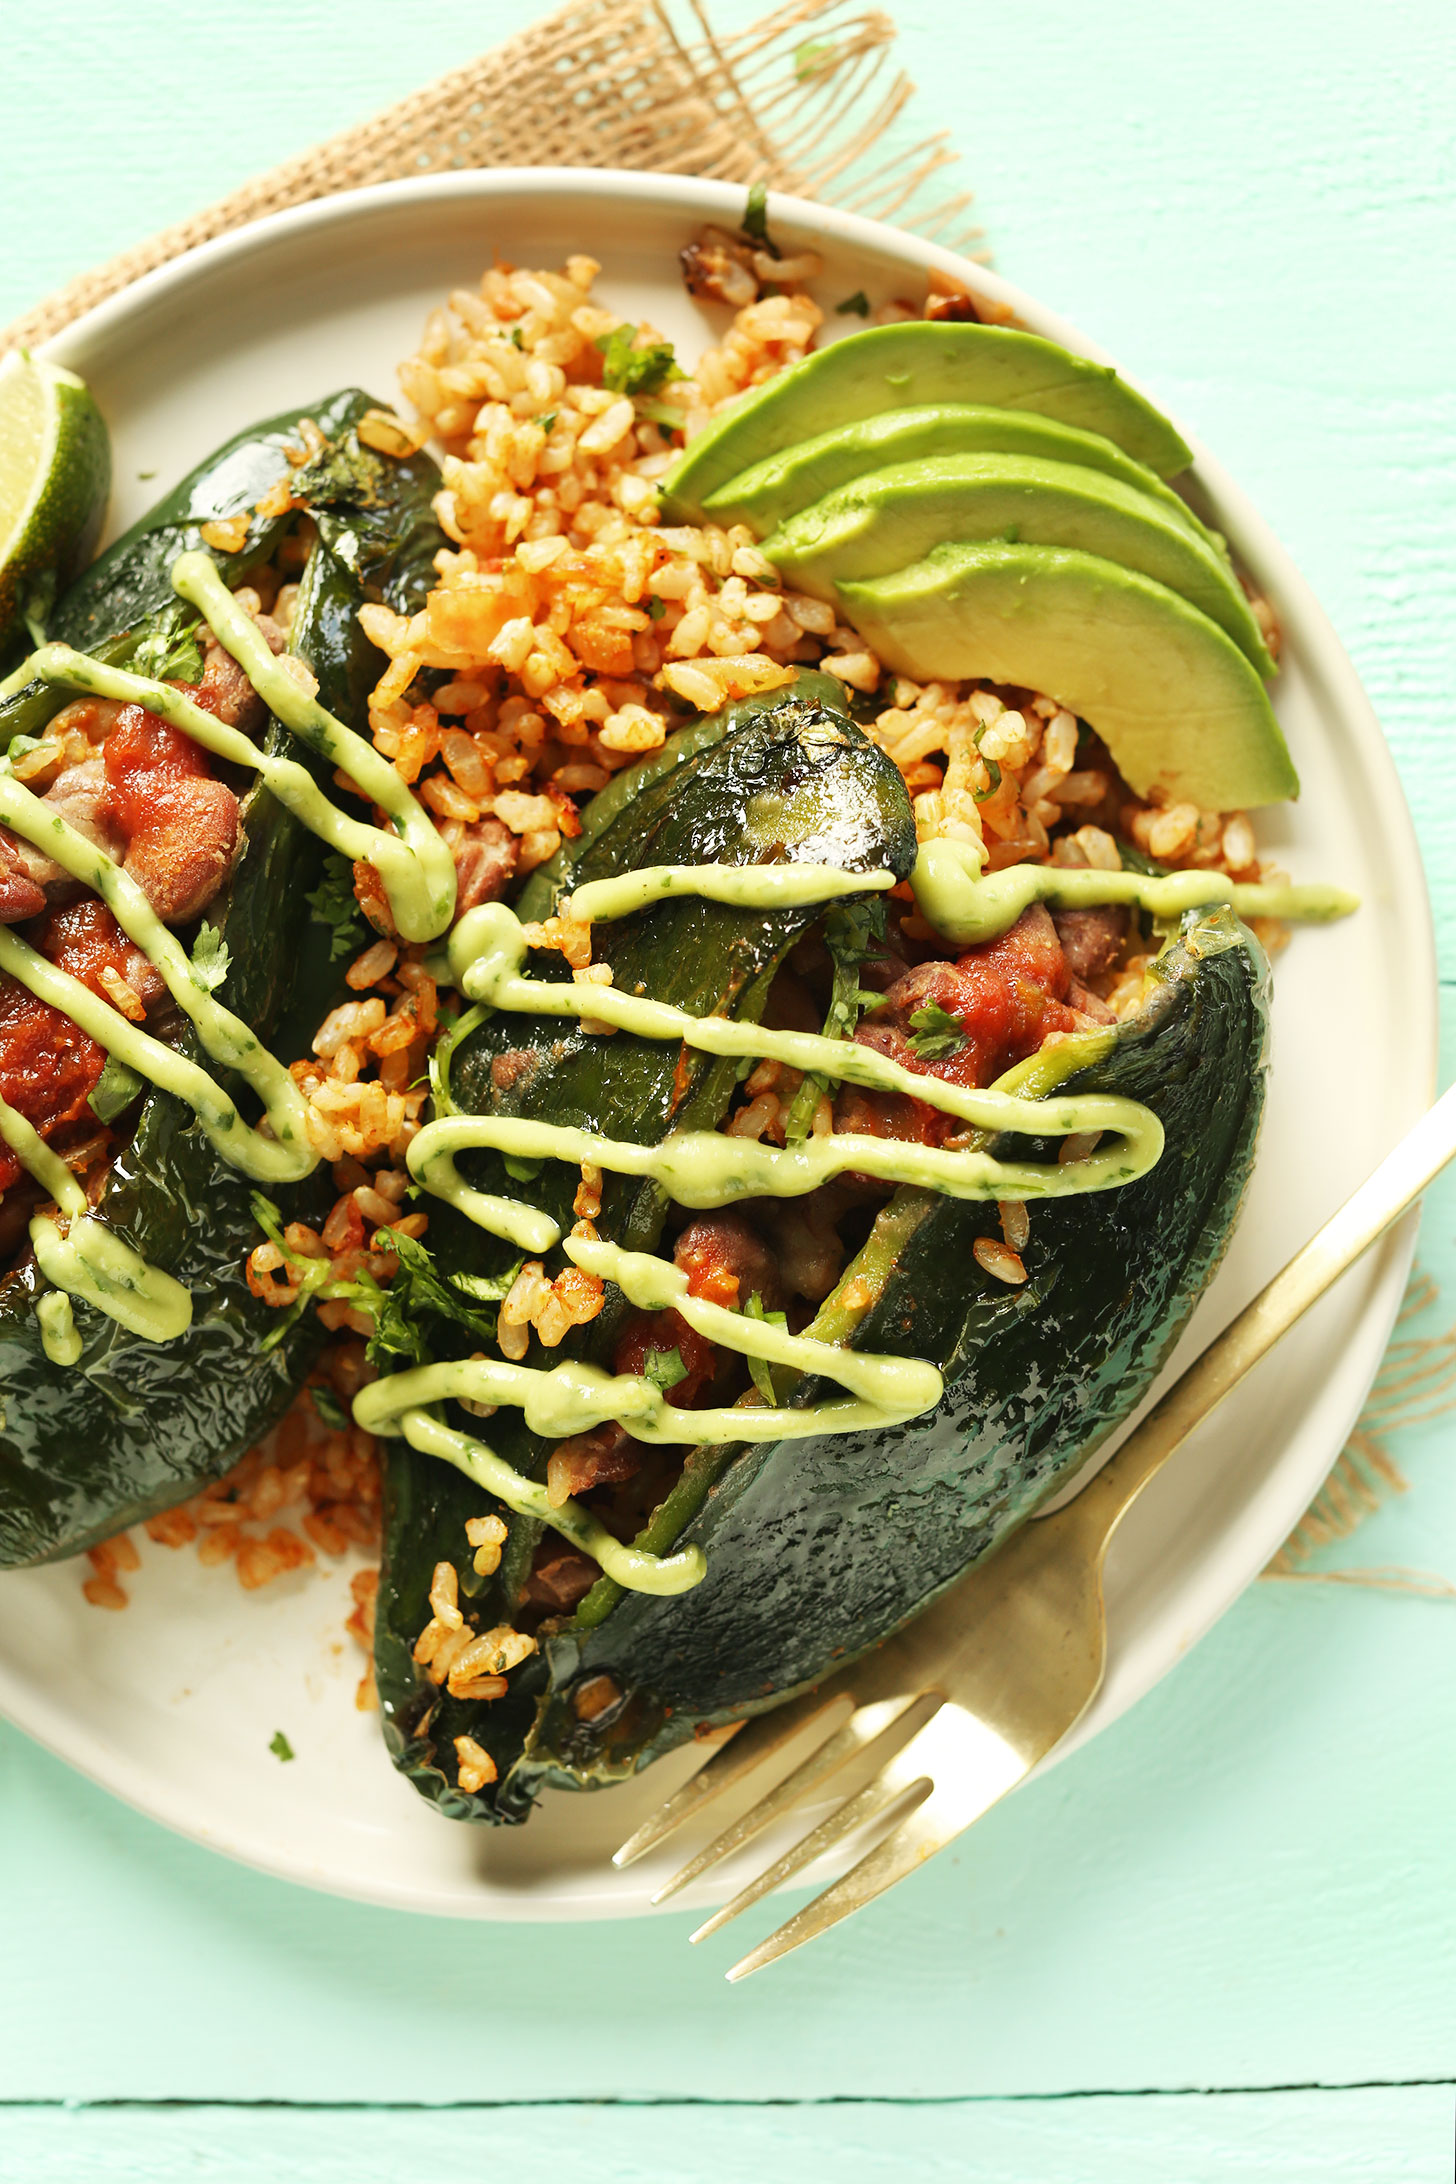 Vegan stuffed poblano peppers minimalist baker recipes plant based dinner of vegan stuffed poblano peppers on a plate forumfinder Gallery